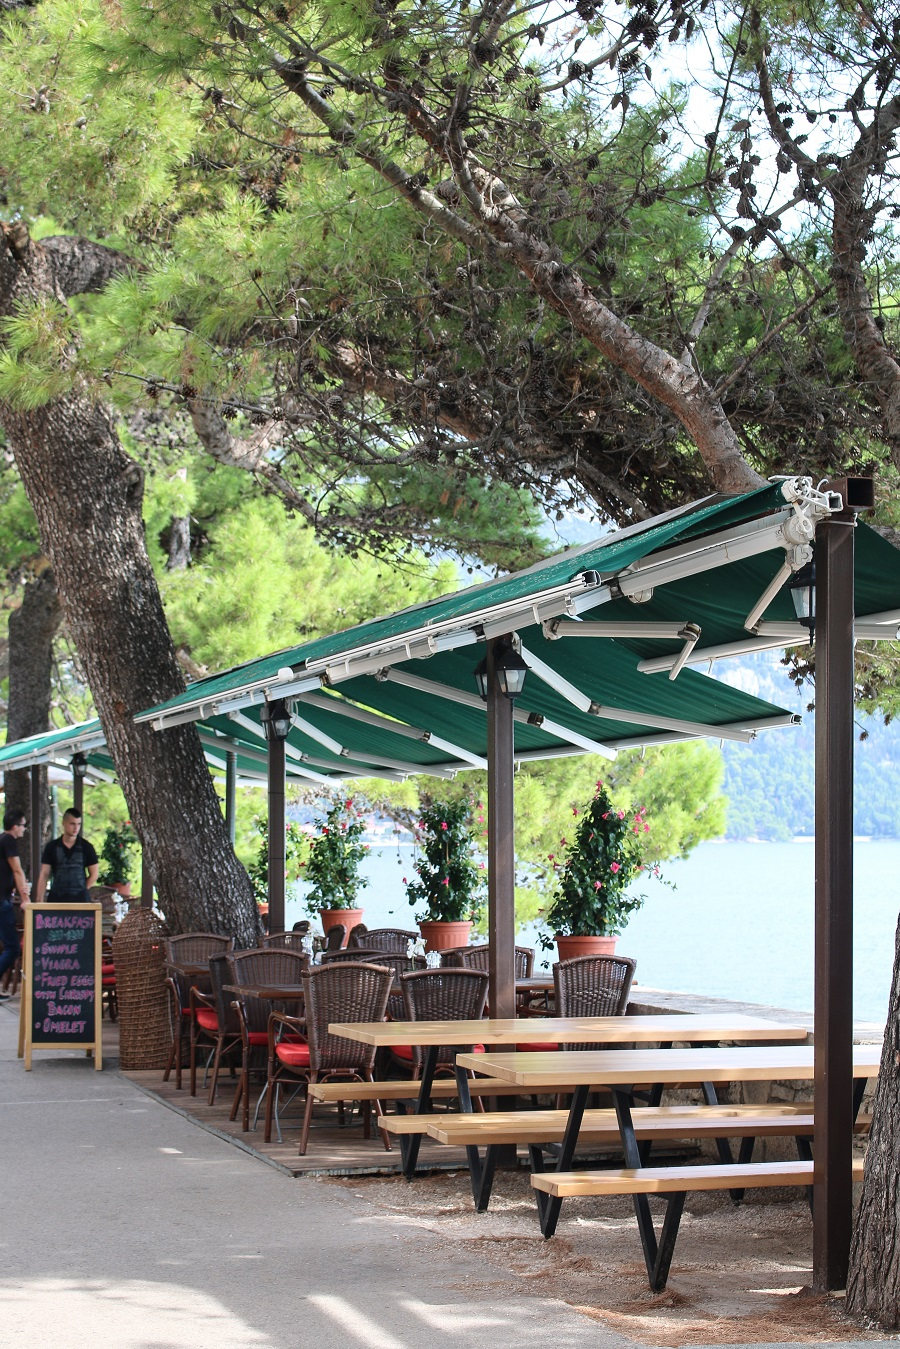 Korcula Island, Croatia: Sun, Sea and History